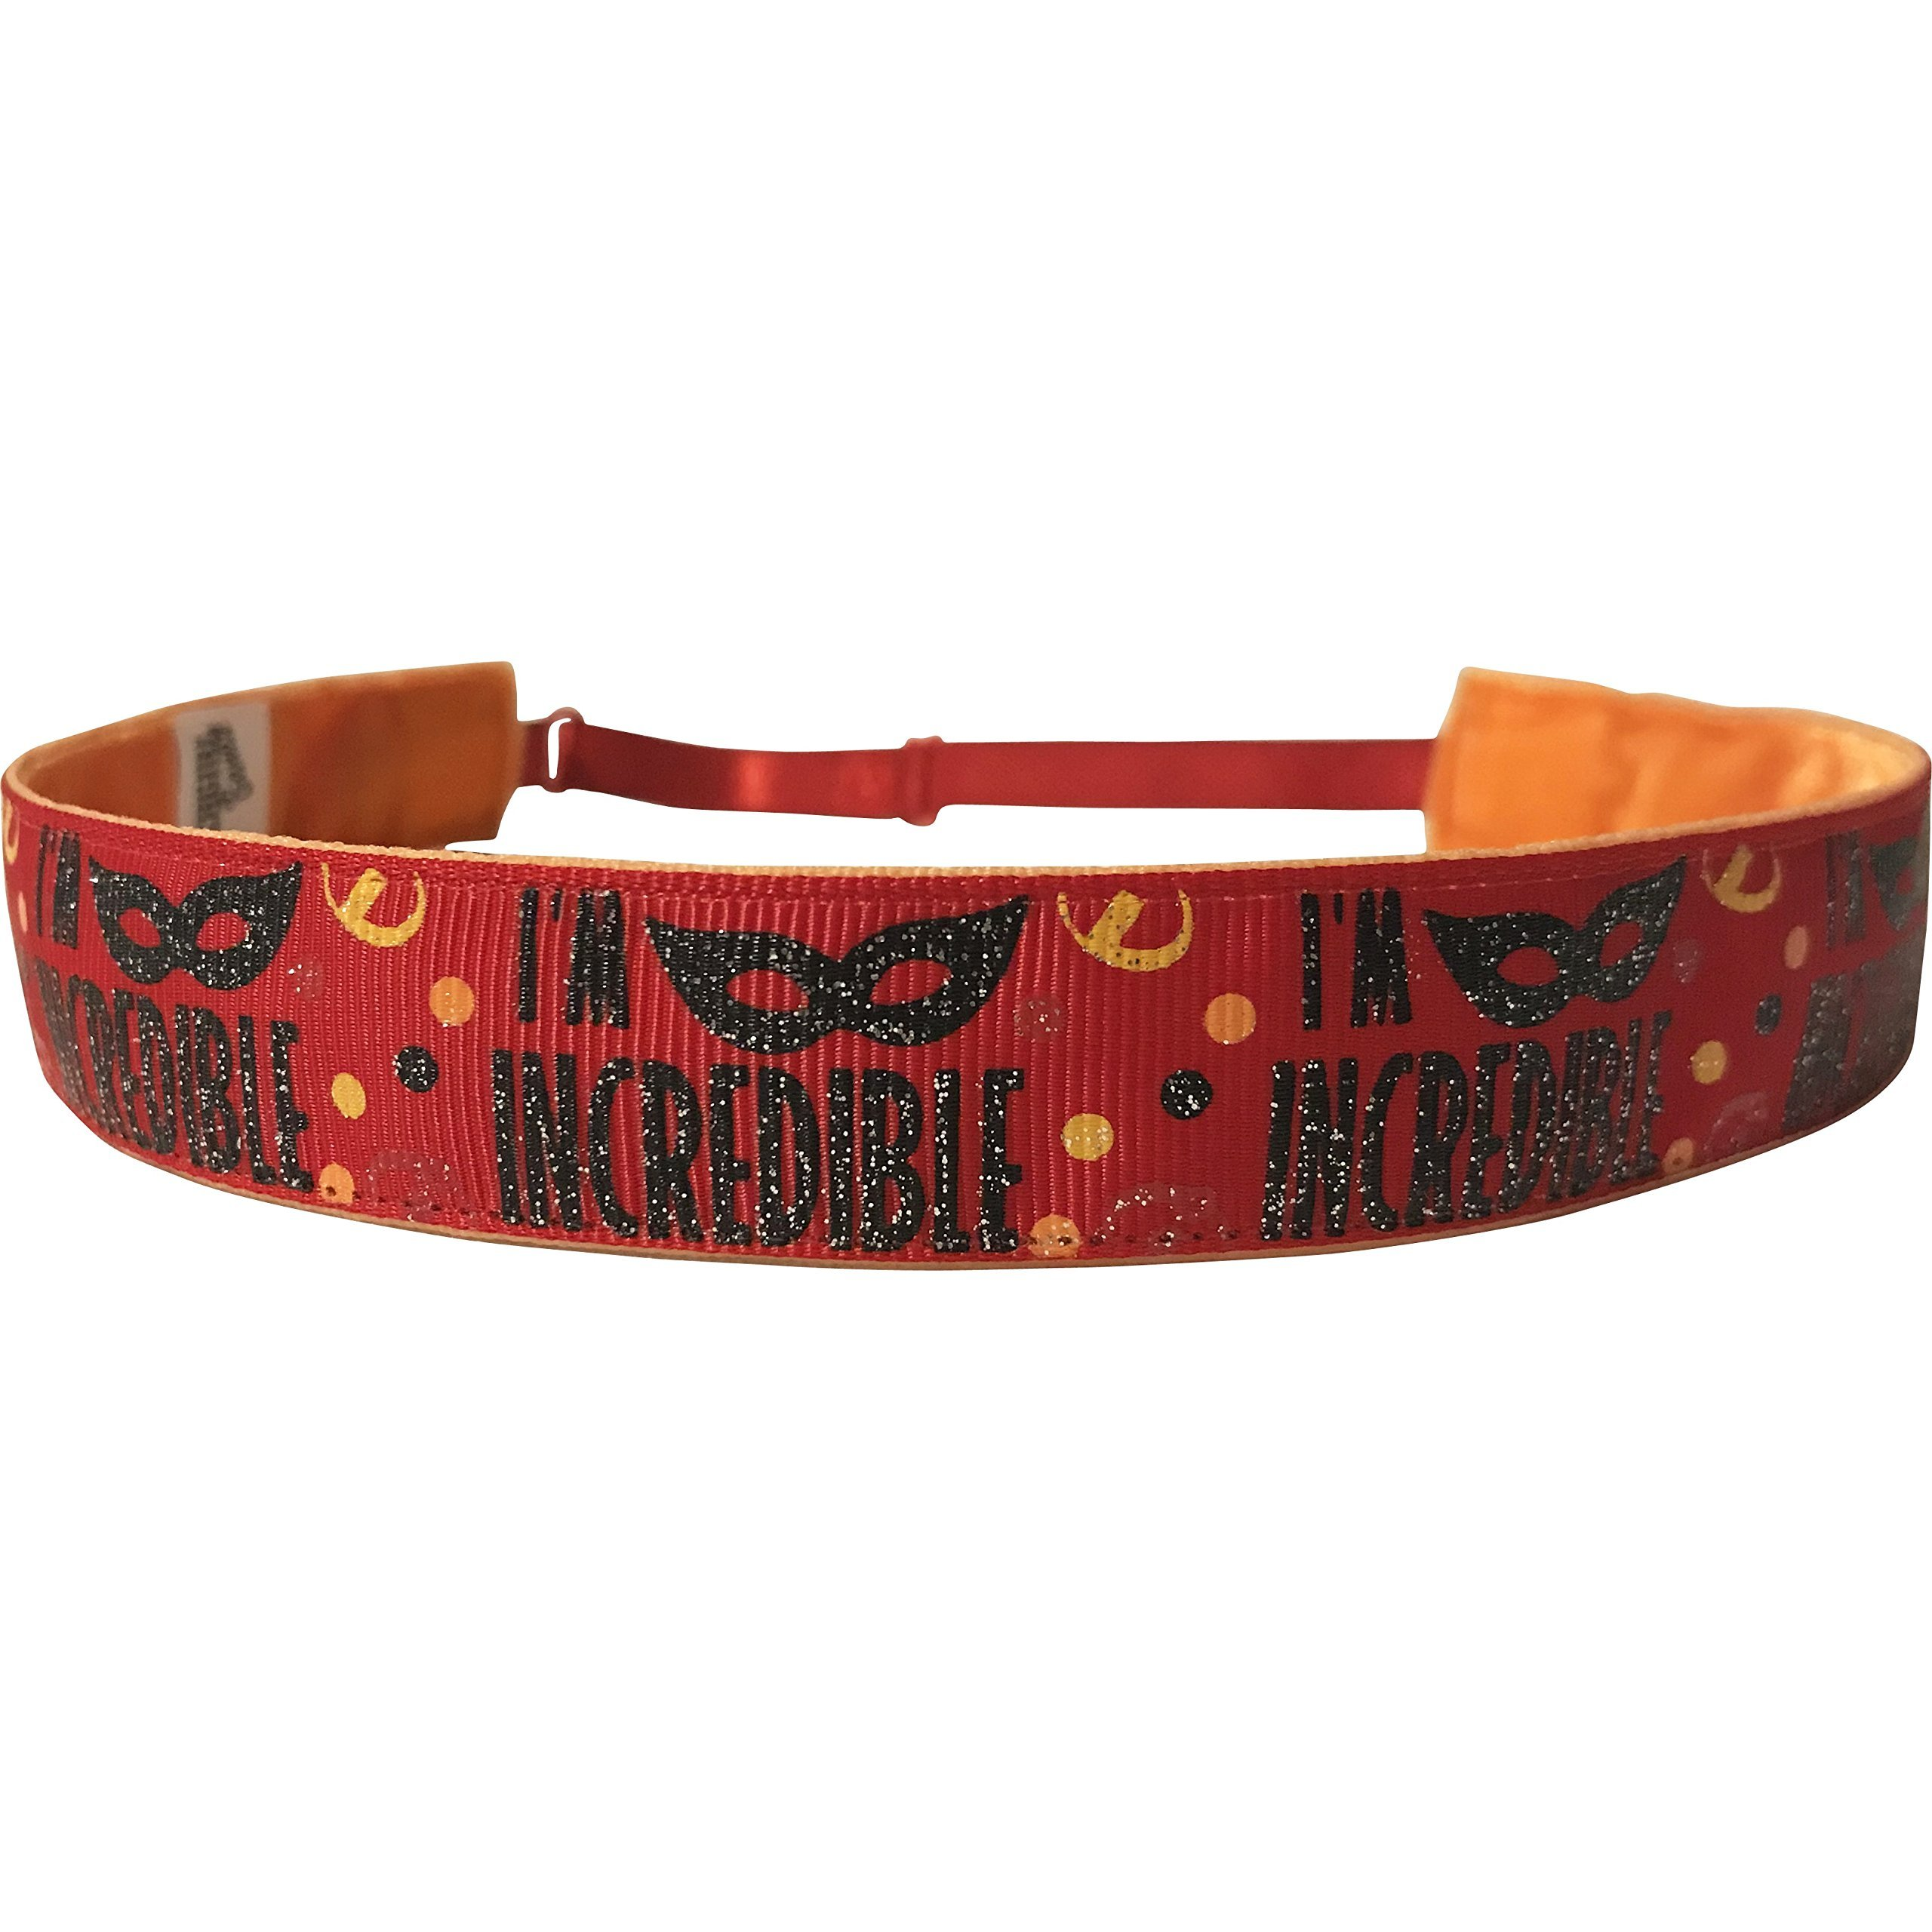 BEACHGIRL Bands Headband Adjustable Hair Band - Non-Slip Sport Band Women & Girls Incredibles Red